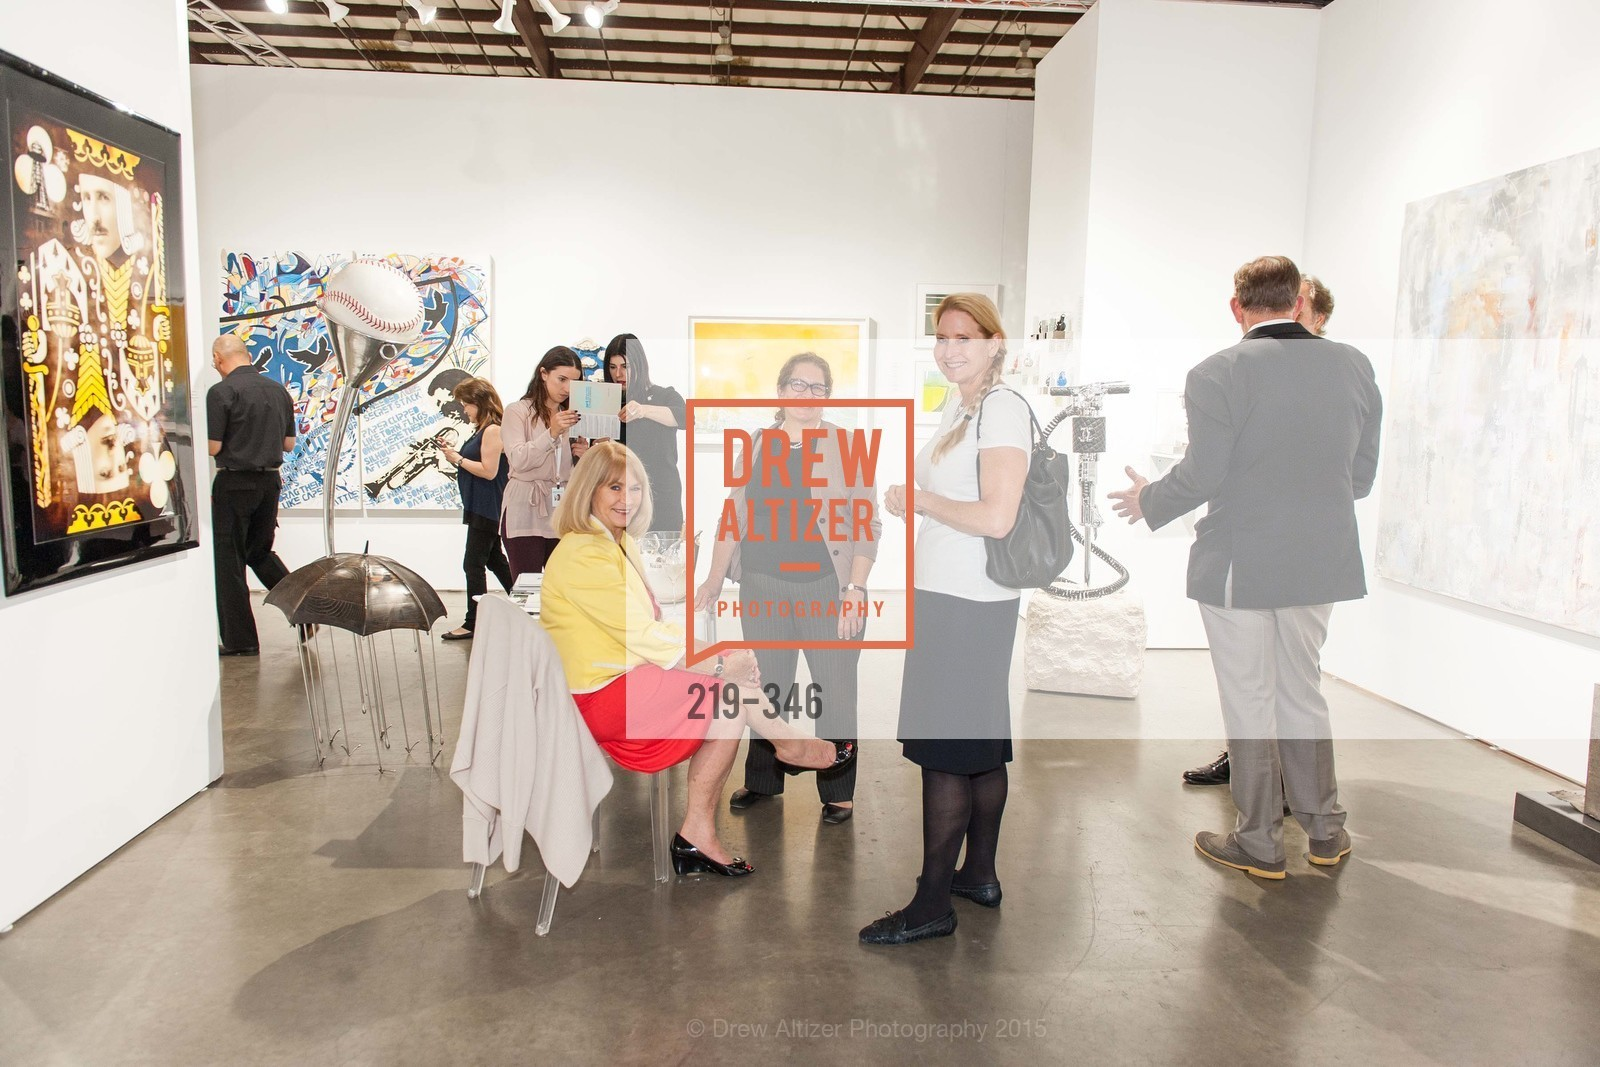 Nola Masterson, Meredith Warshaw, Laura Raynak, Art Miami Presents: Art Silicon Valley, San Mateo County Event Center. 1346 Saratoga Dr, October 8th, 2015,Drew Altizer, Drew Altizer Photography, full-service agency, private events, San Francisco photographer, photographer california